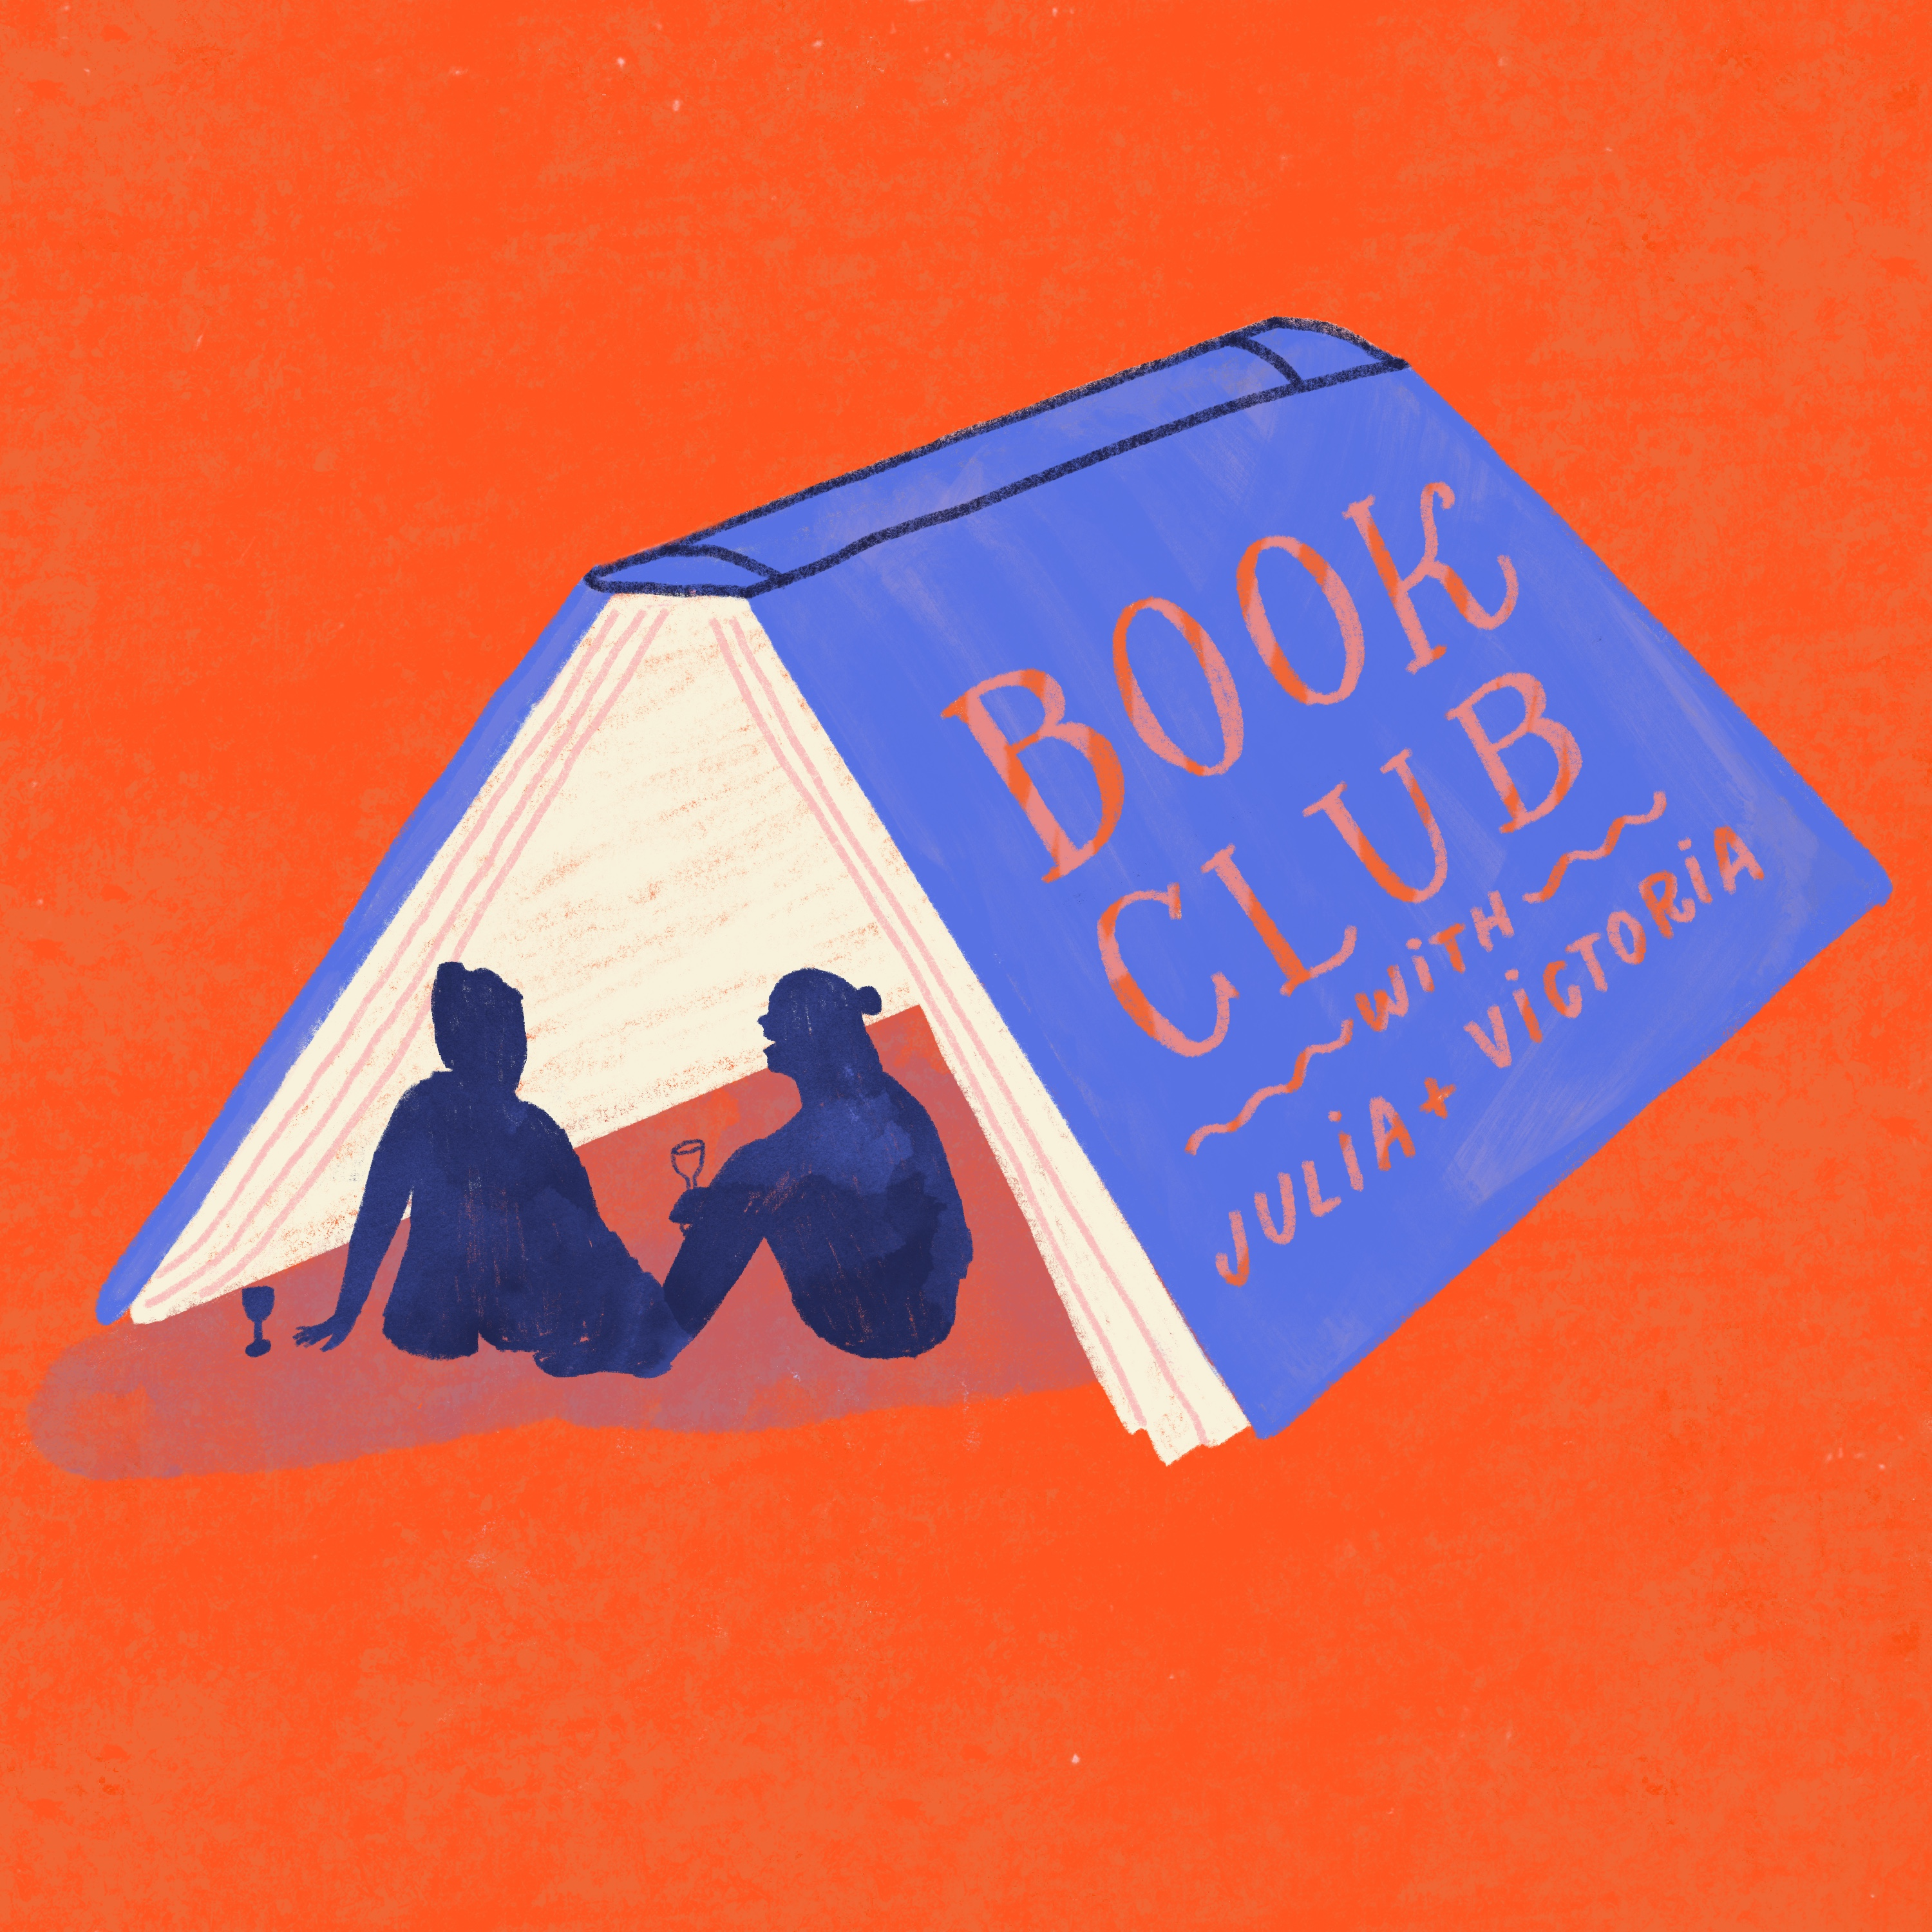 Book Club with Julia and Victoria